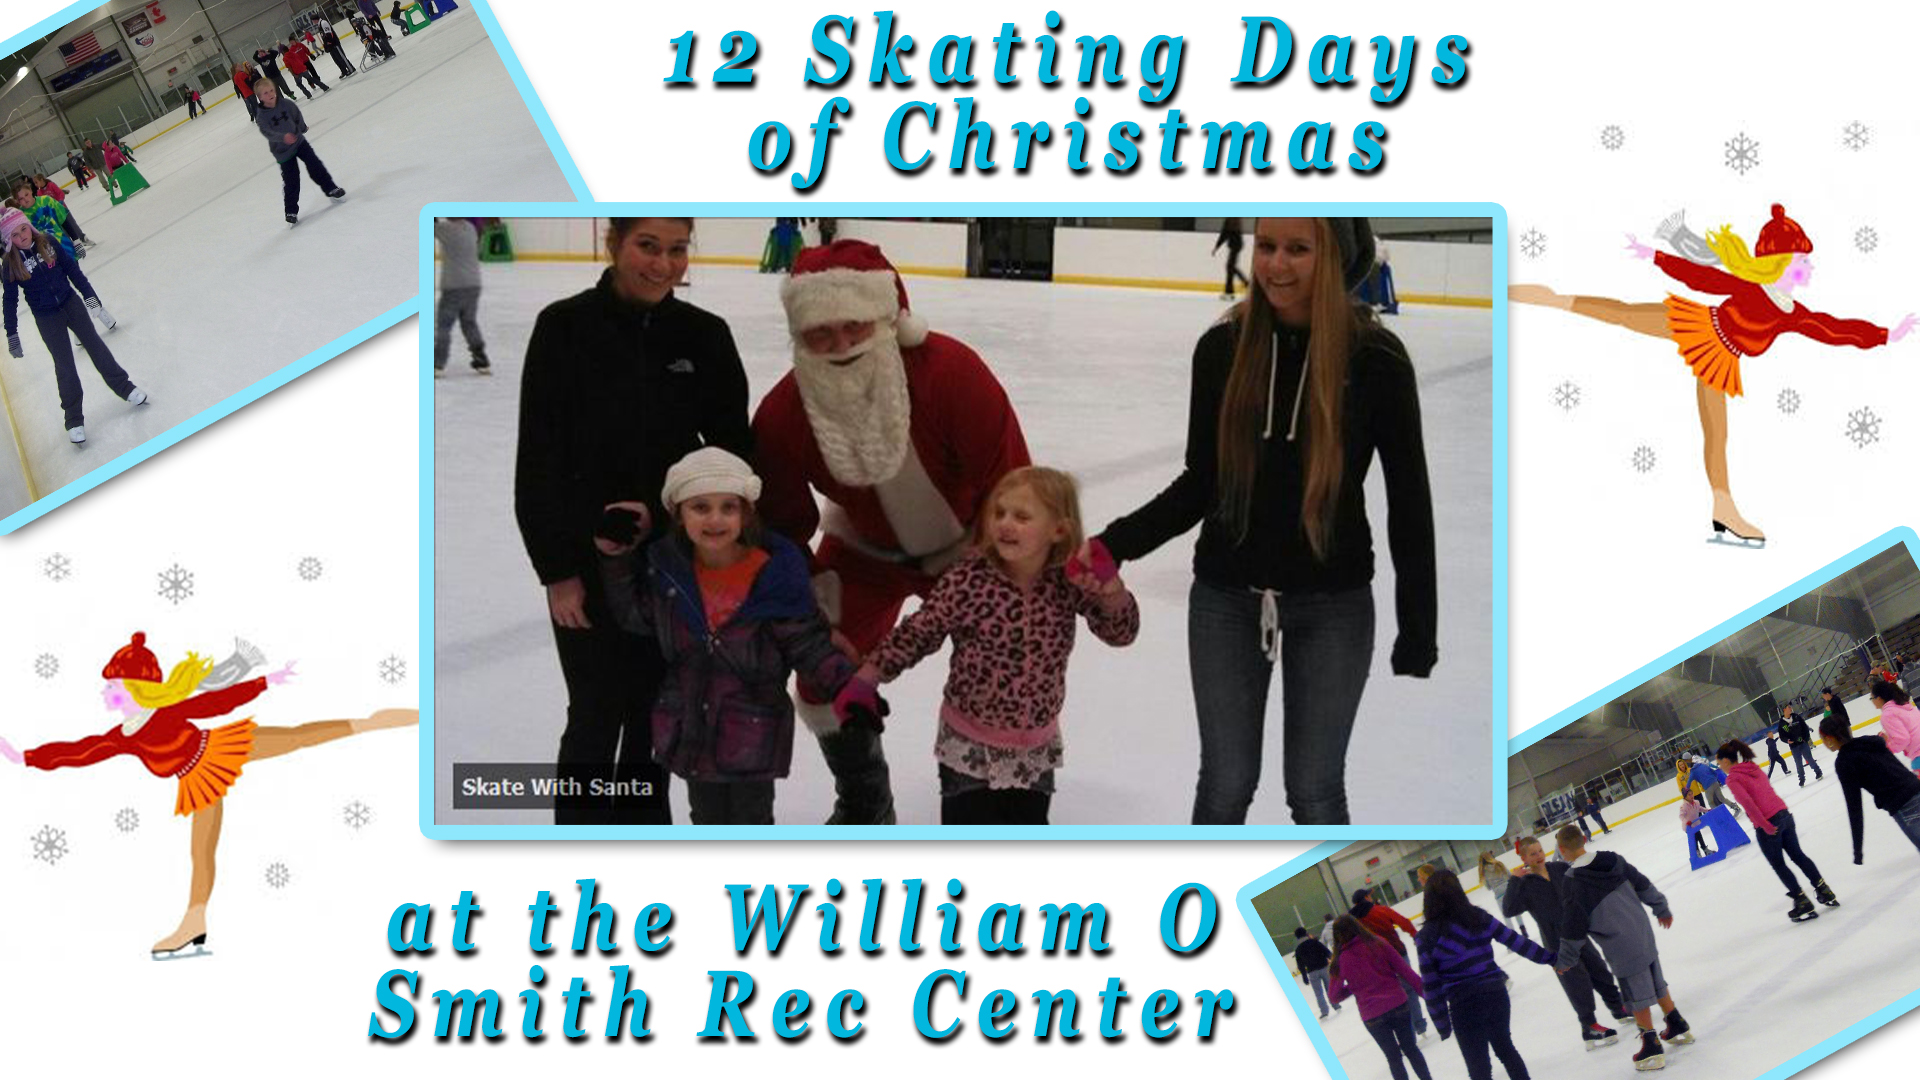 12 Skating Days of Christmas in Olean